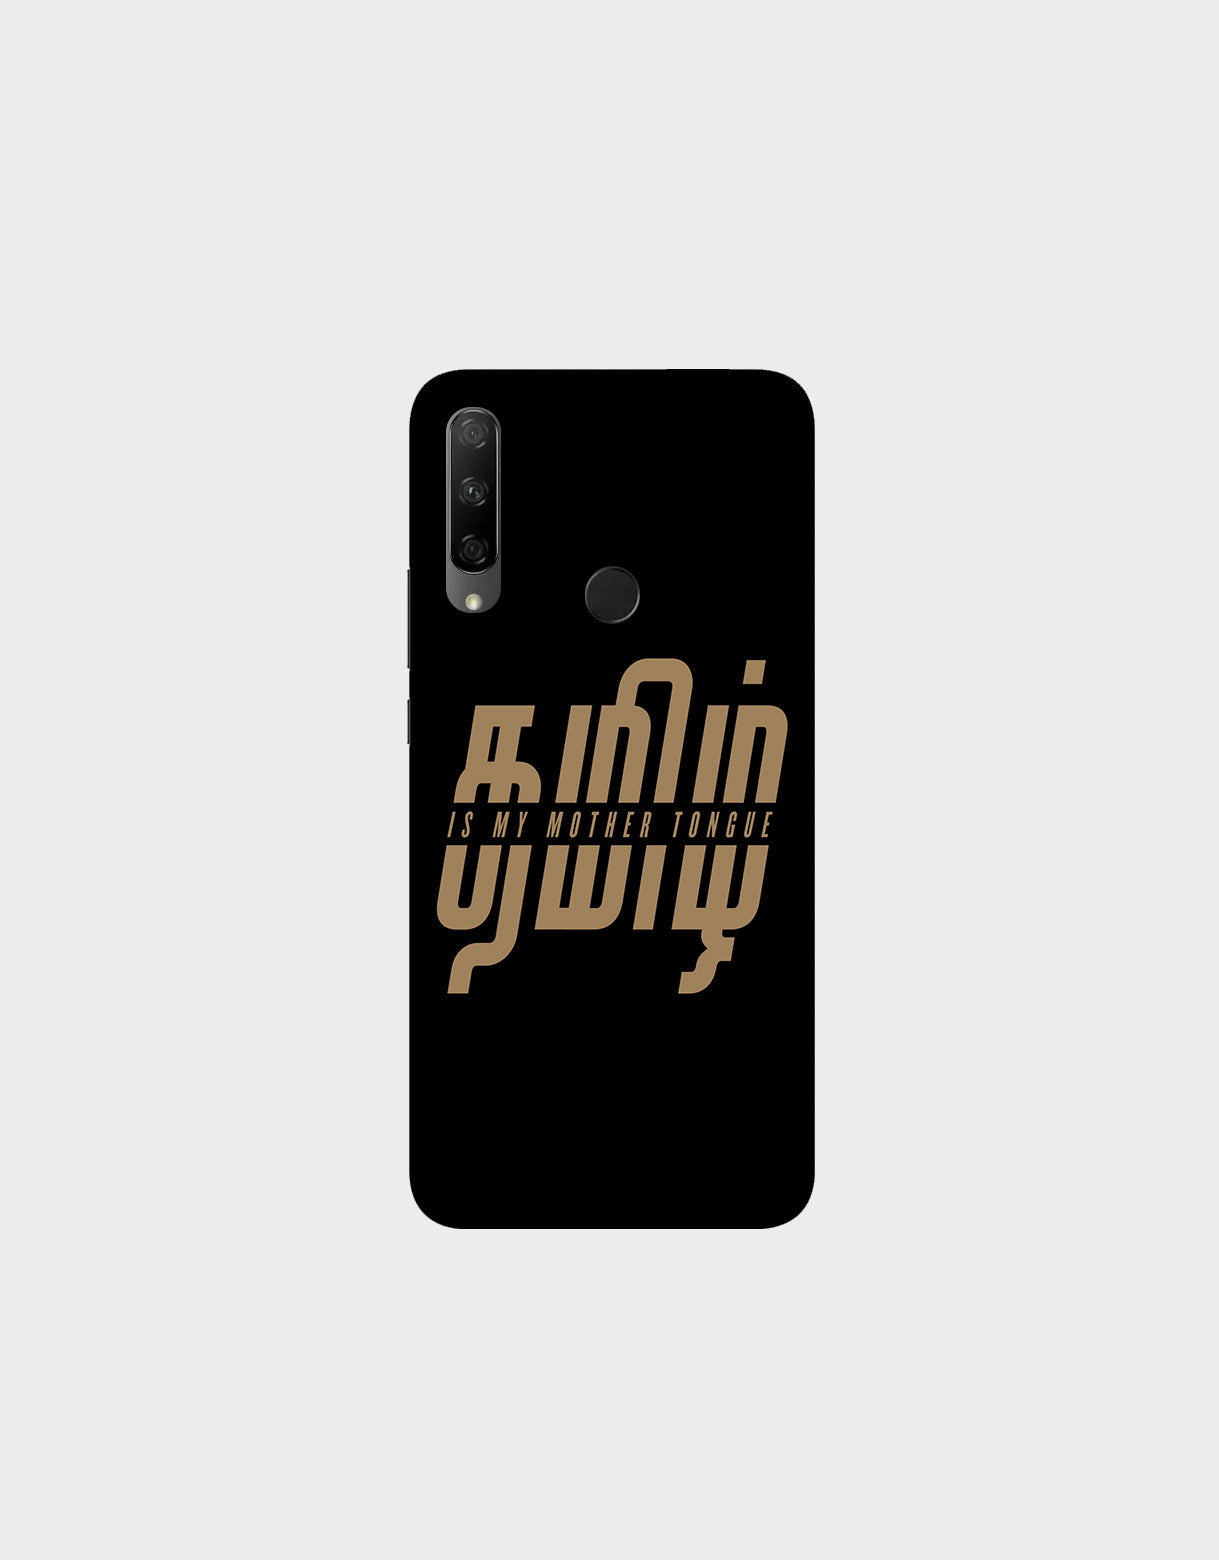 Tamil is my mother tonque -Honor 9X  Mobile covers